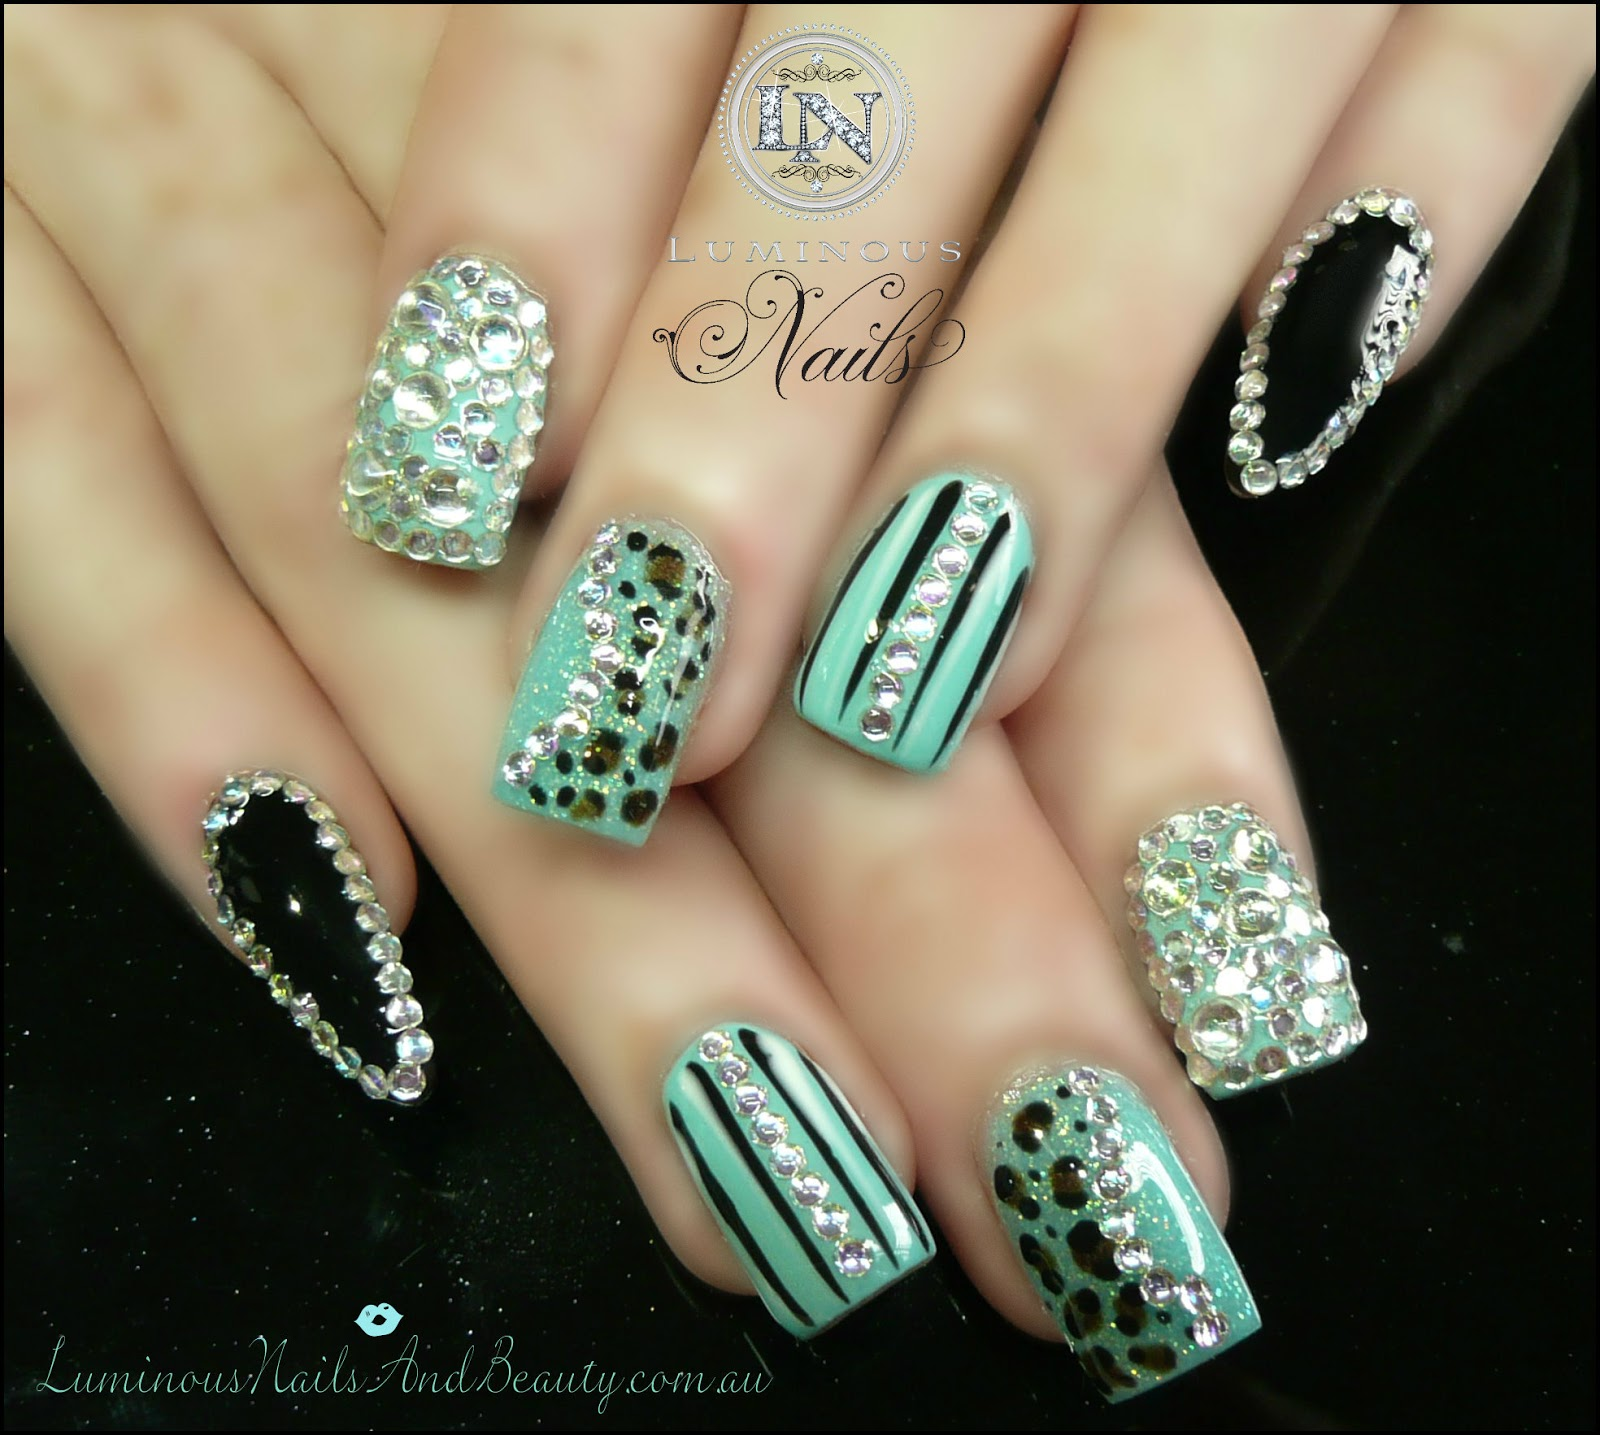 Diamond White Nail Art Designs - 2015 Best Nails Design Ideas